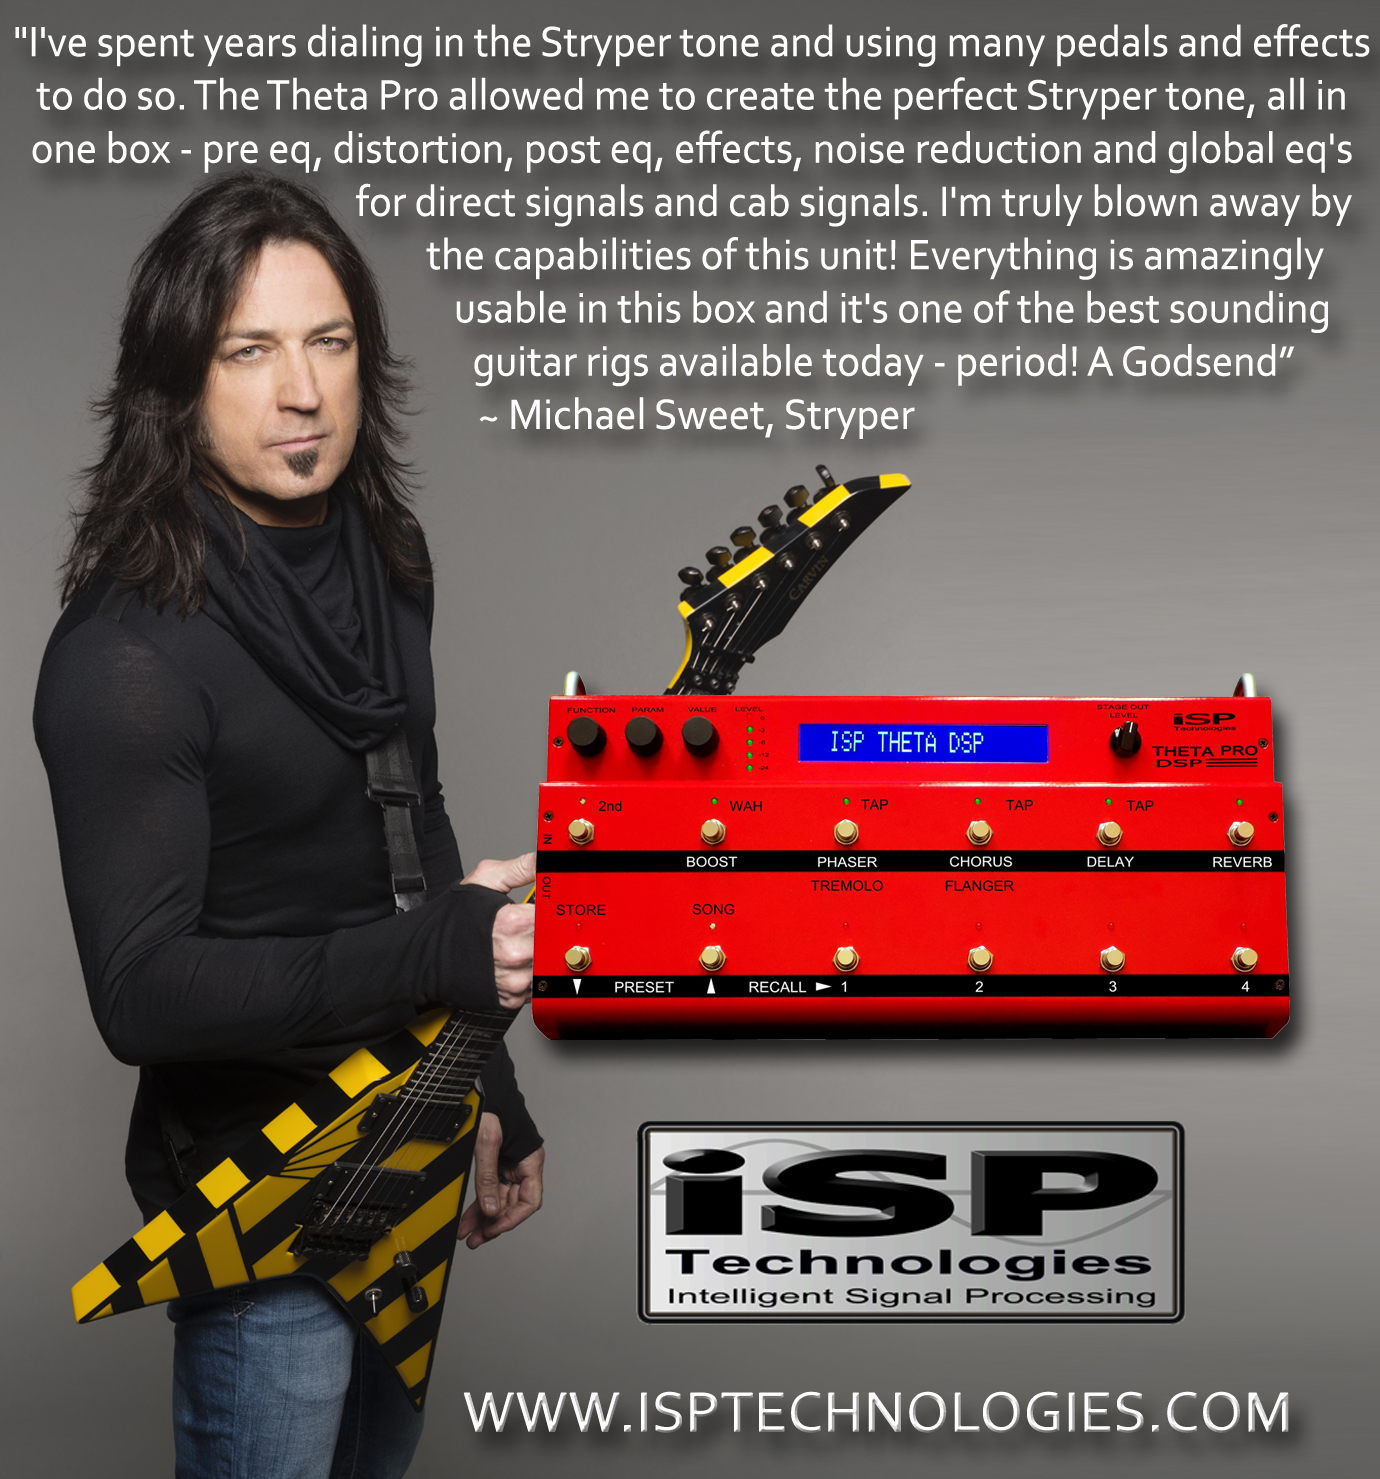 michael sweet stryper quote theta pro copy